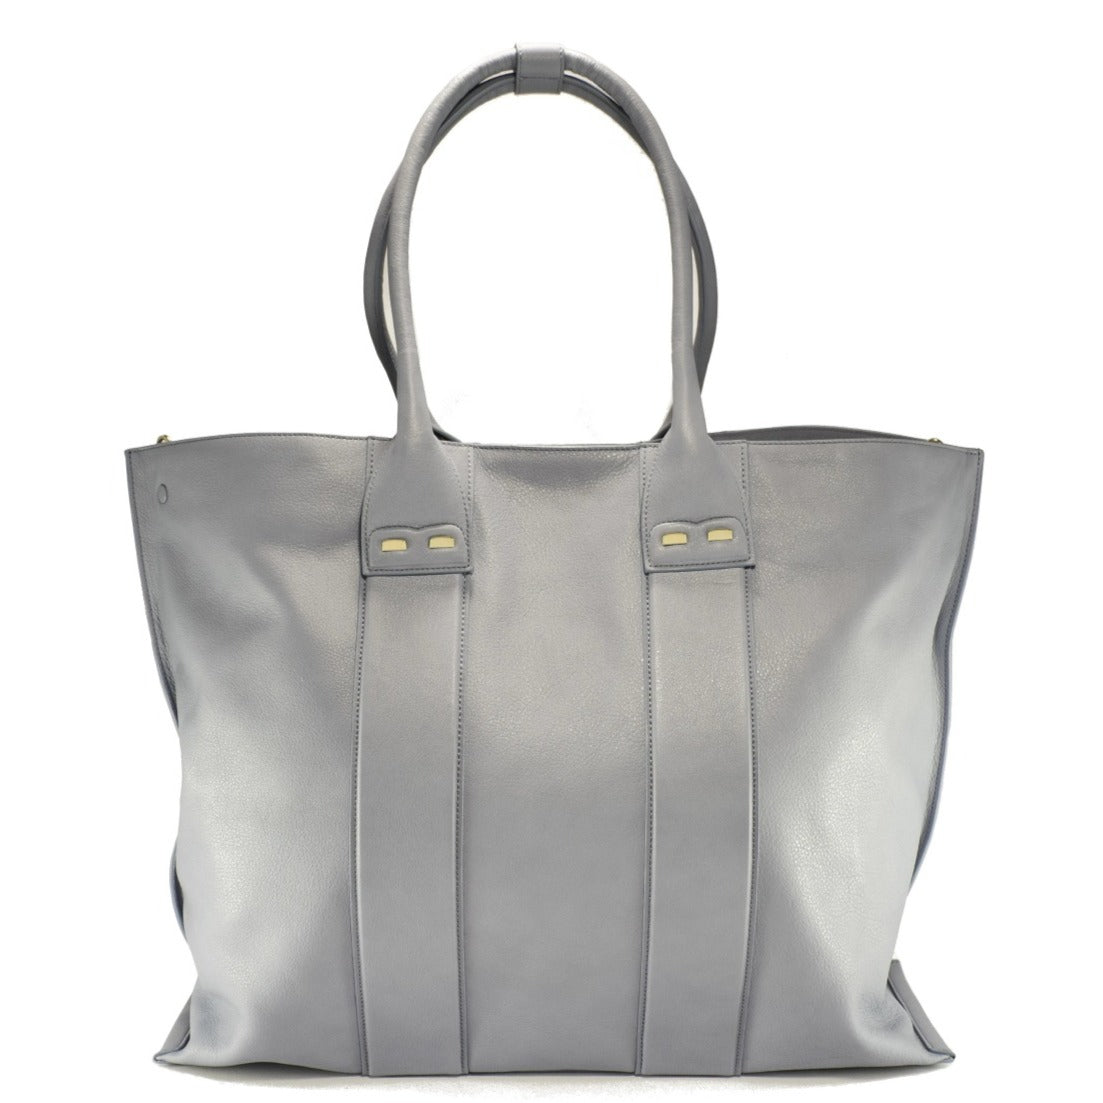 Stafford in Pioggia - BENE Handbags